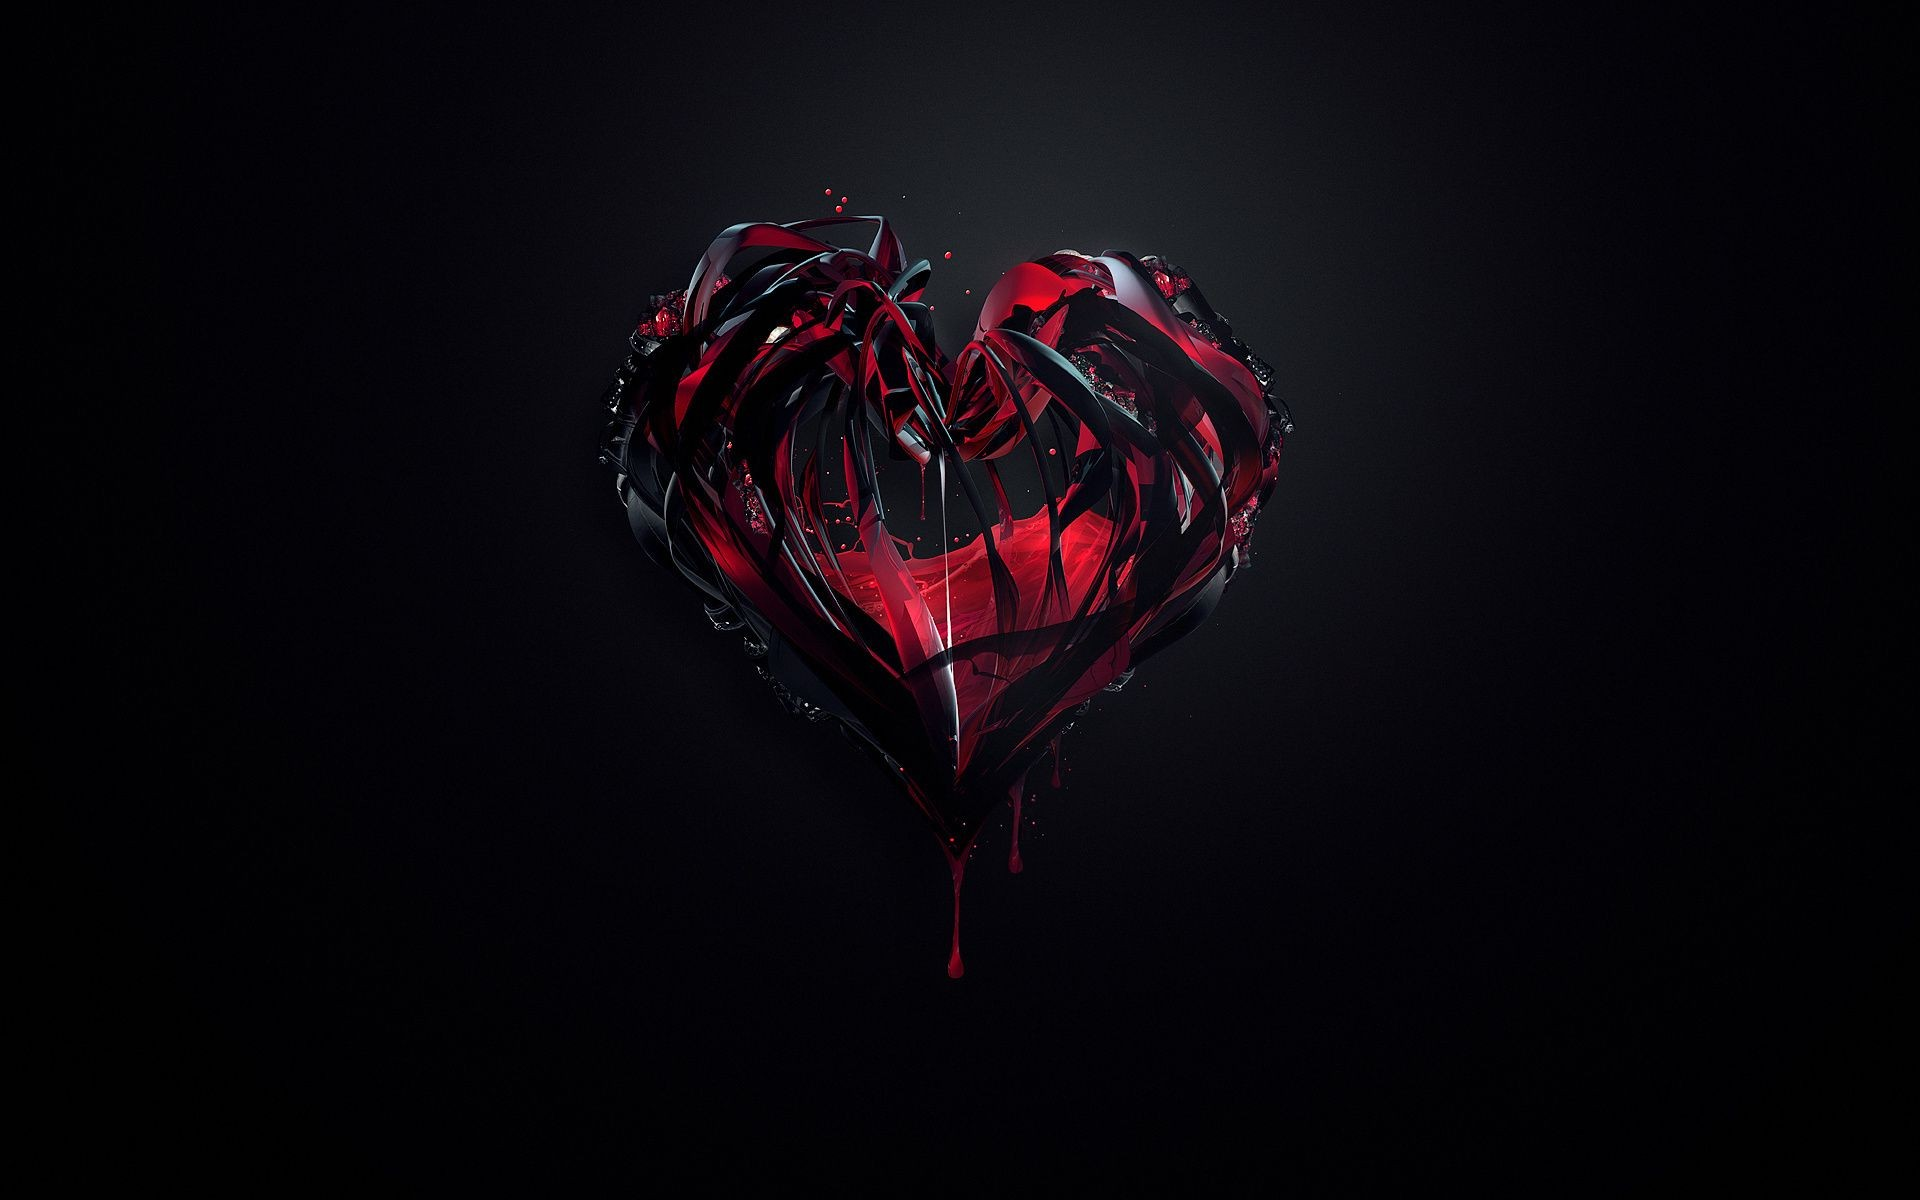 Minimalist Paint The Heart Red Black Background Free Wallpapers